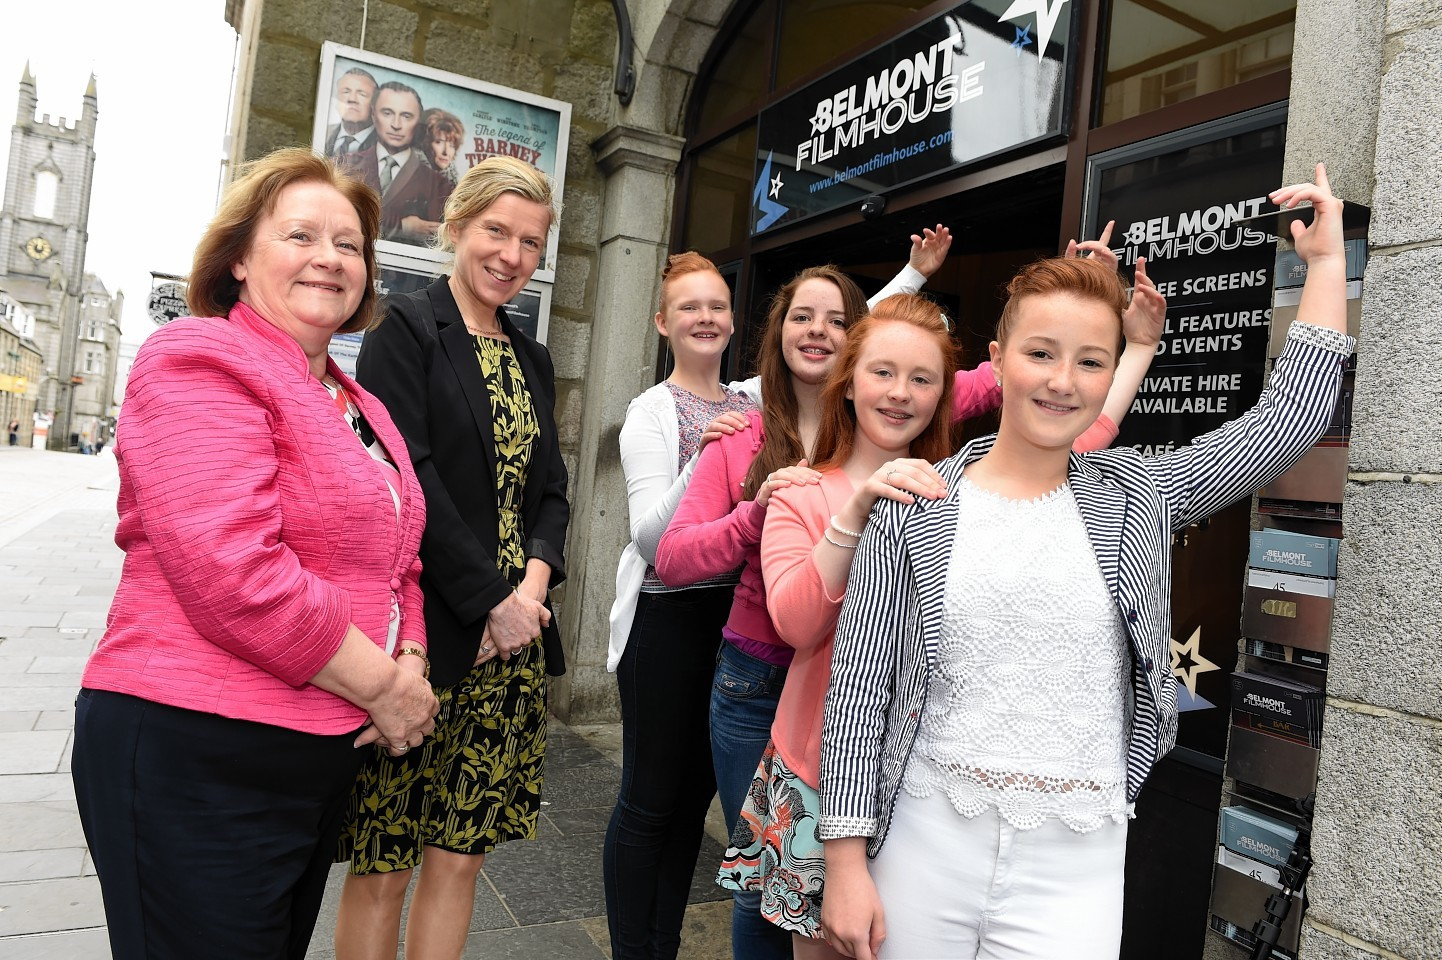 Maureen Watt, Minister for Public Health, Film director Katrina McPherson and cast Louise Strachan, Kimberley Sheppard, Erin Pyper and Georgia Jack at Belmont Cinema.  Picture by Kevin Emslie